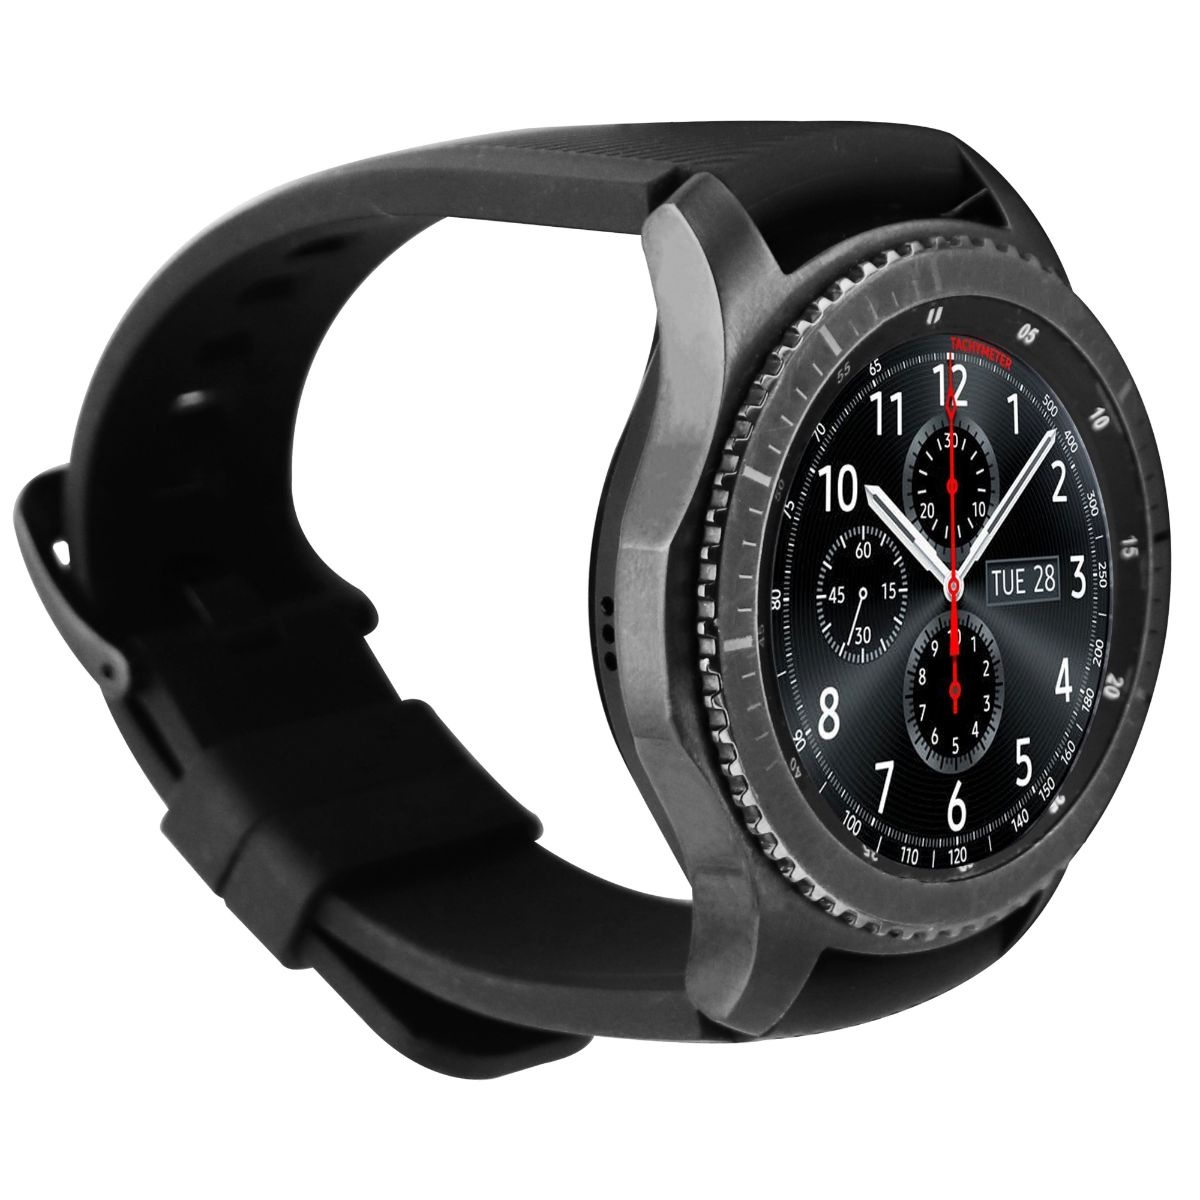 Samsung Gear S3 Frontier Smart Watch - Space Gray (SM-R760)